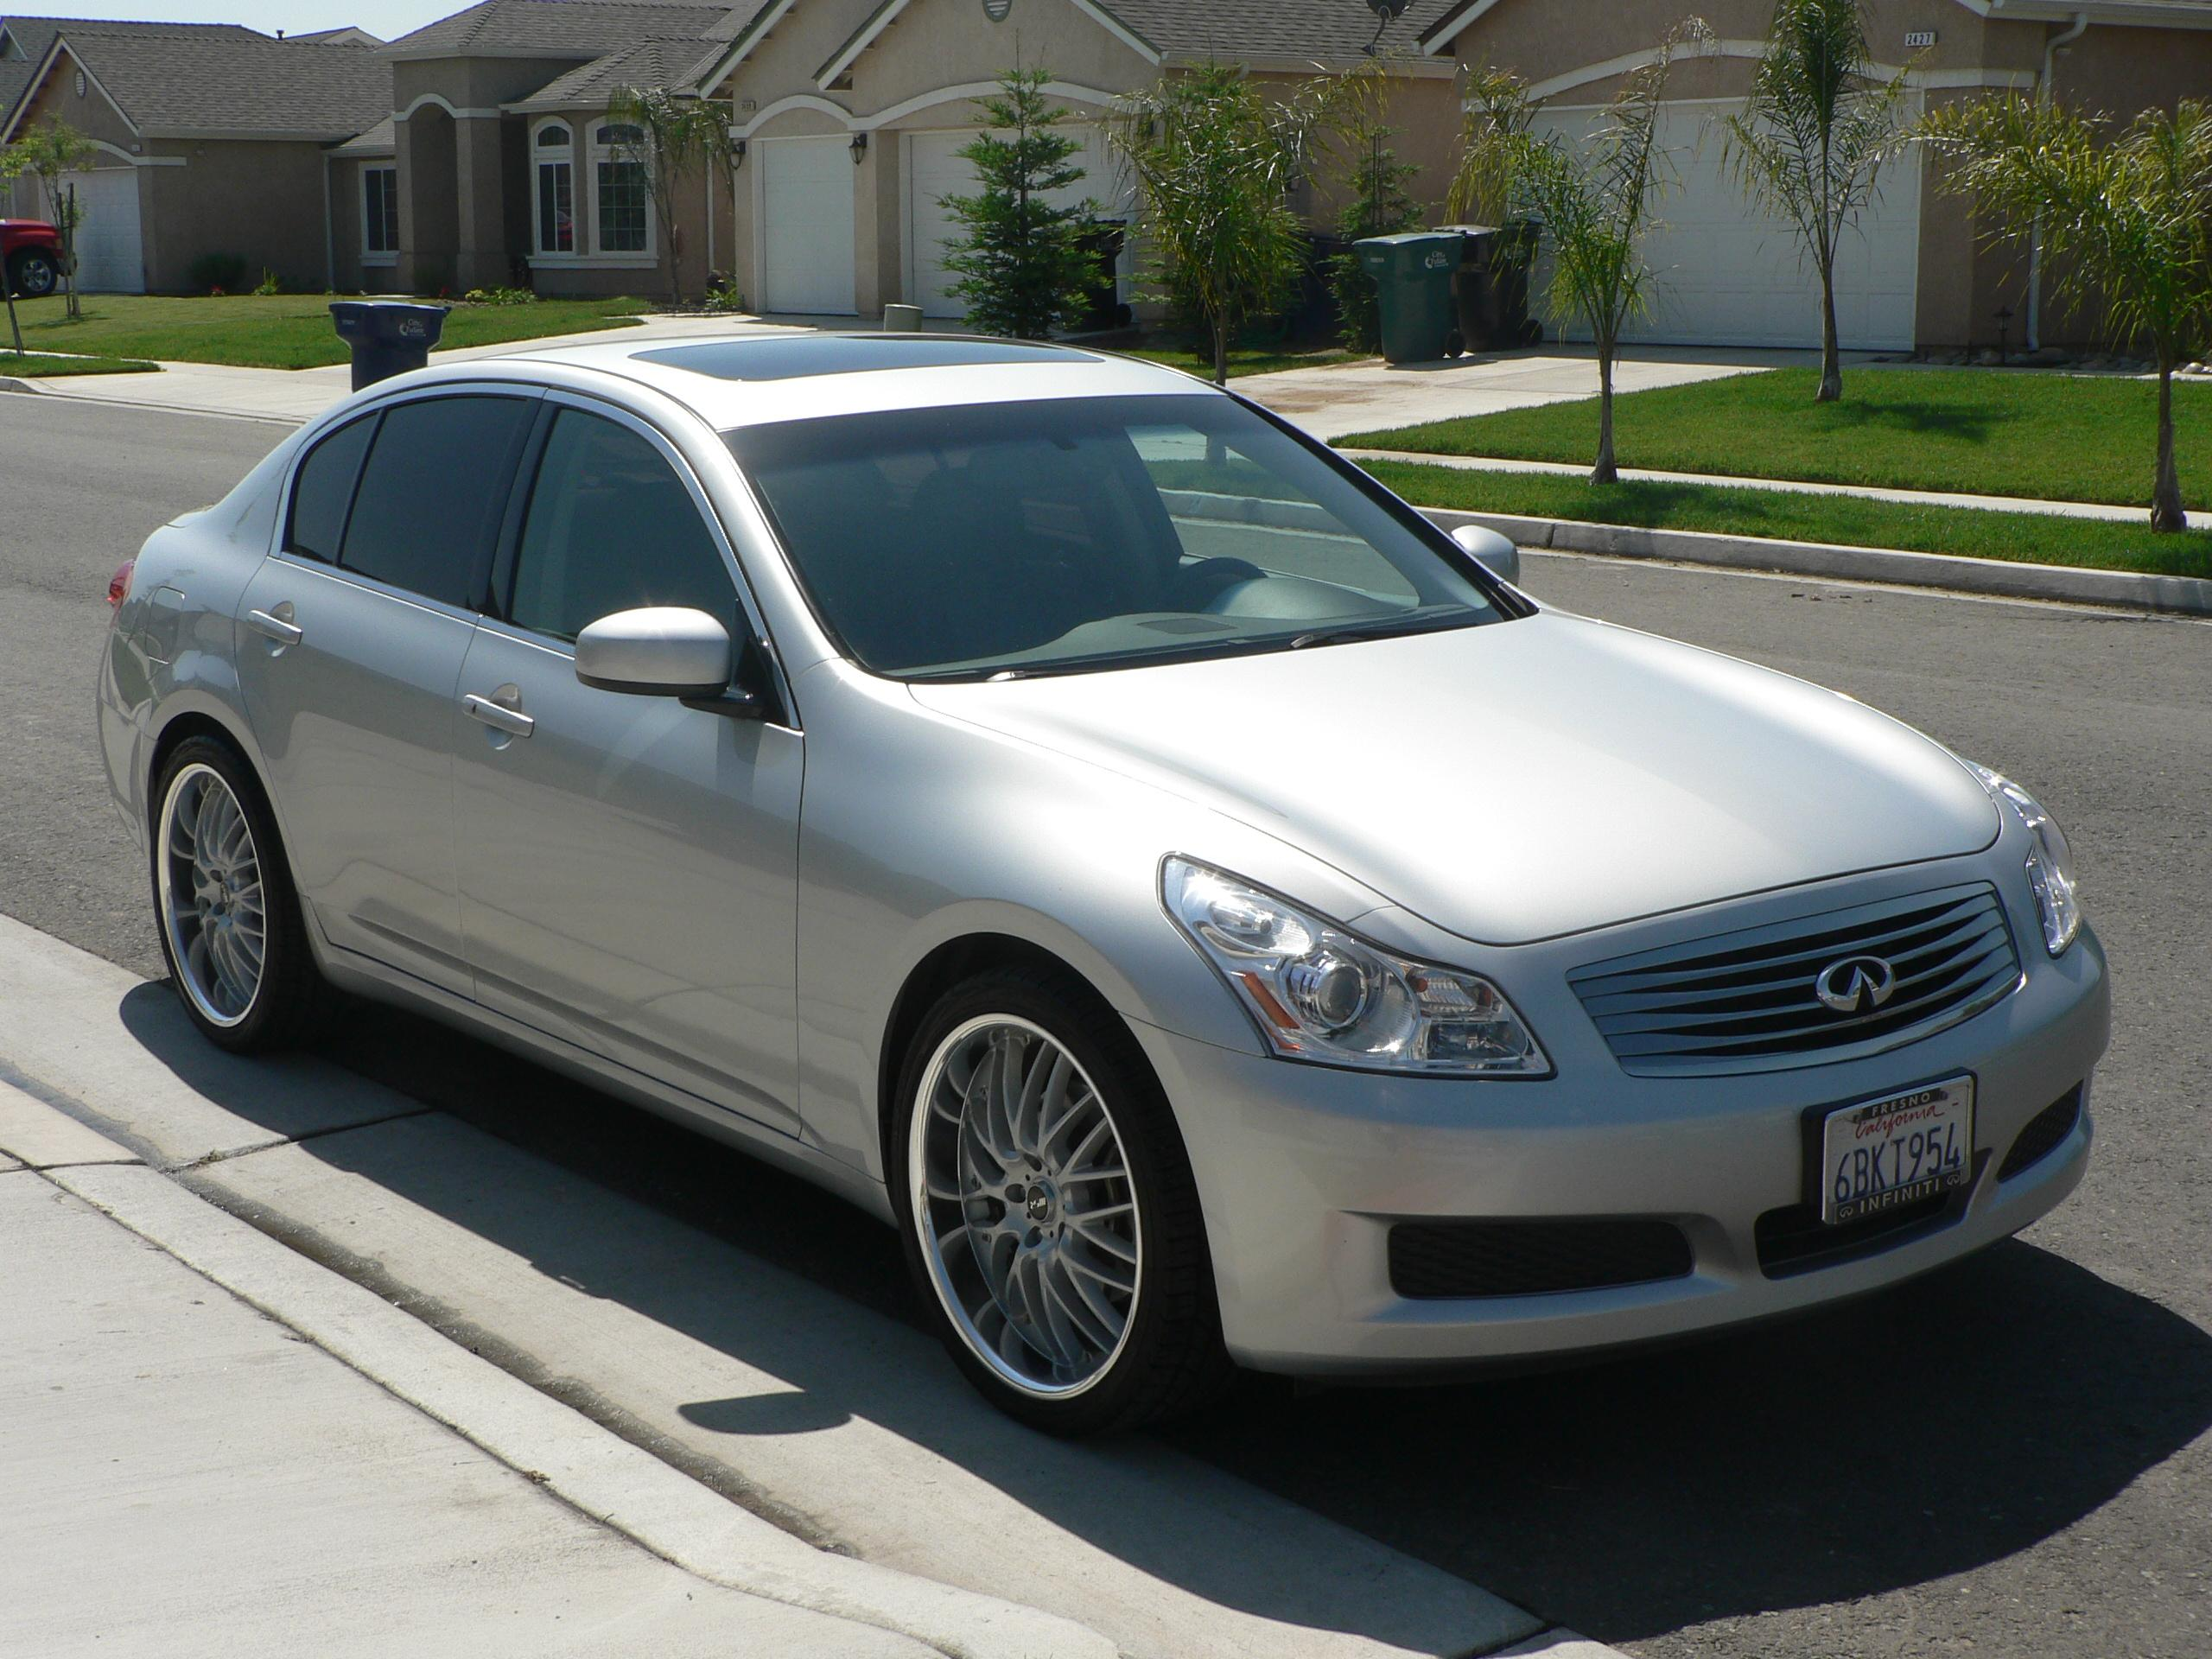 preludegjb 39 s 2007 infiniti g in tulare ca. Black Bedroom Furniture Sets. Home Design Ideas